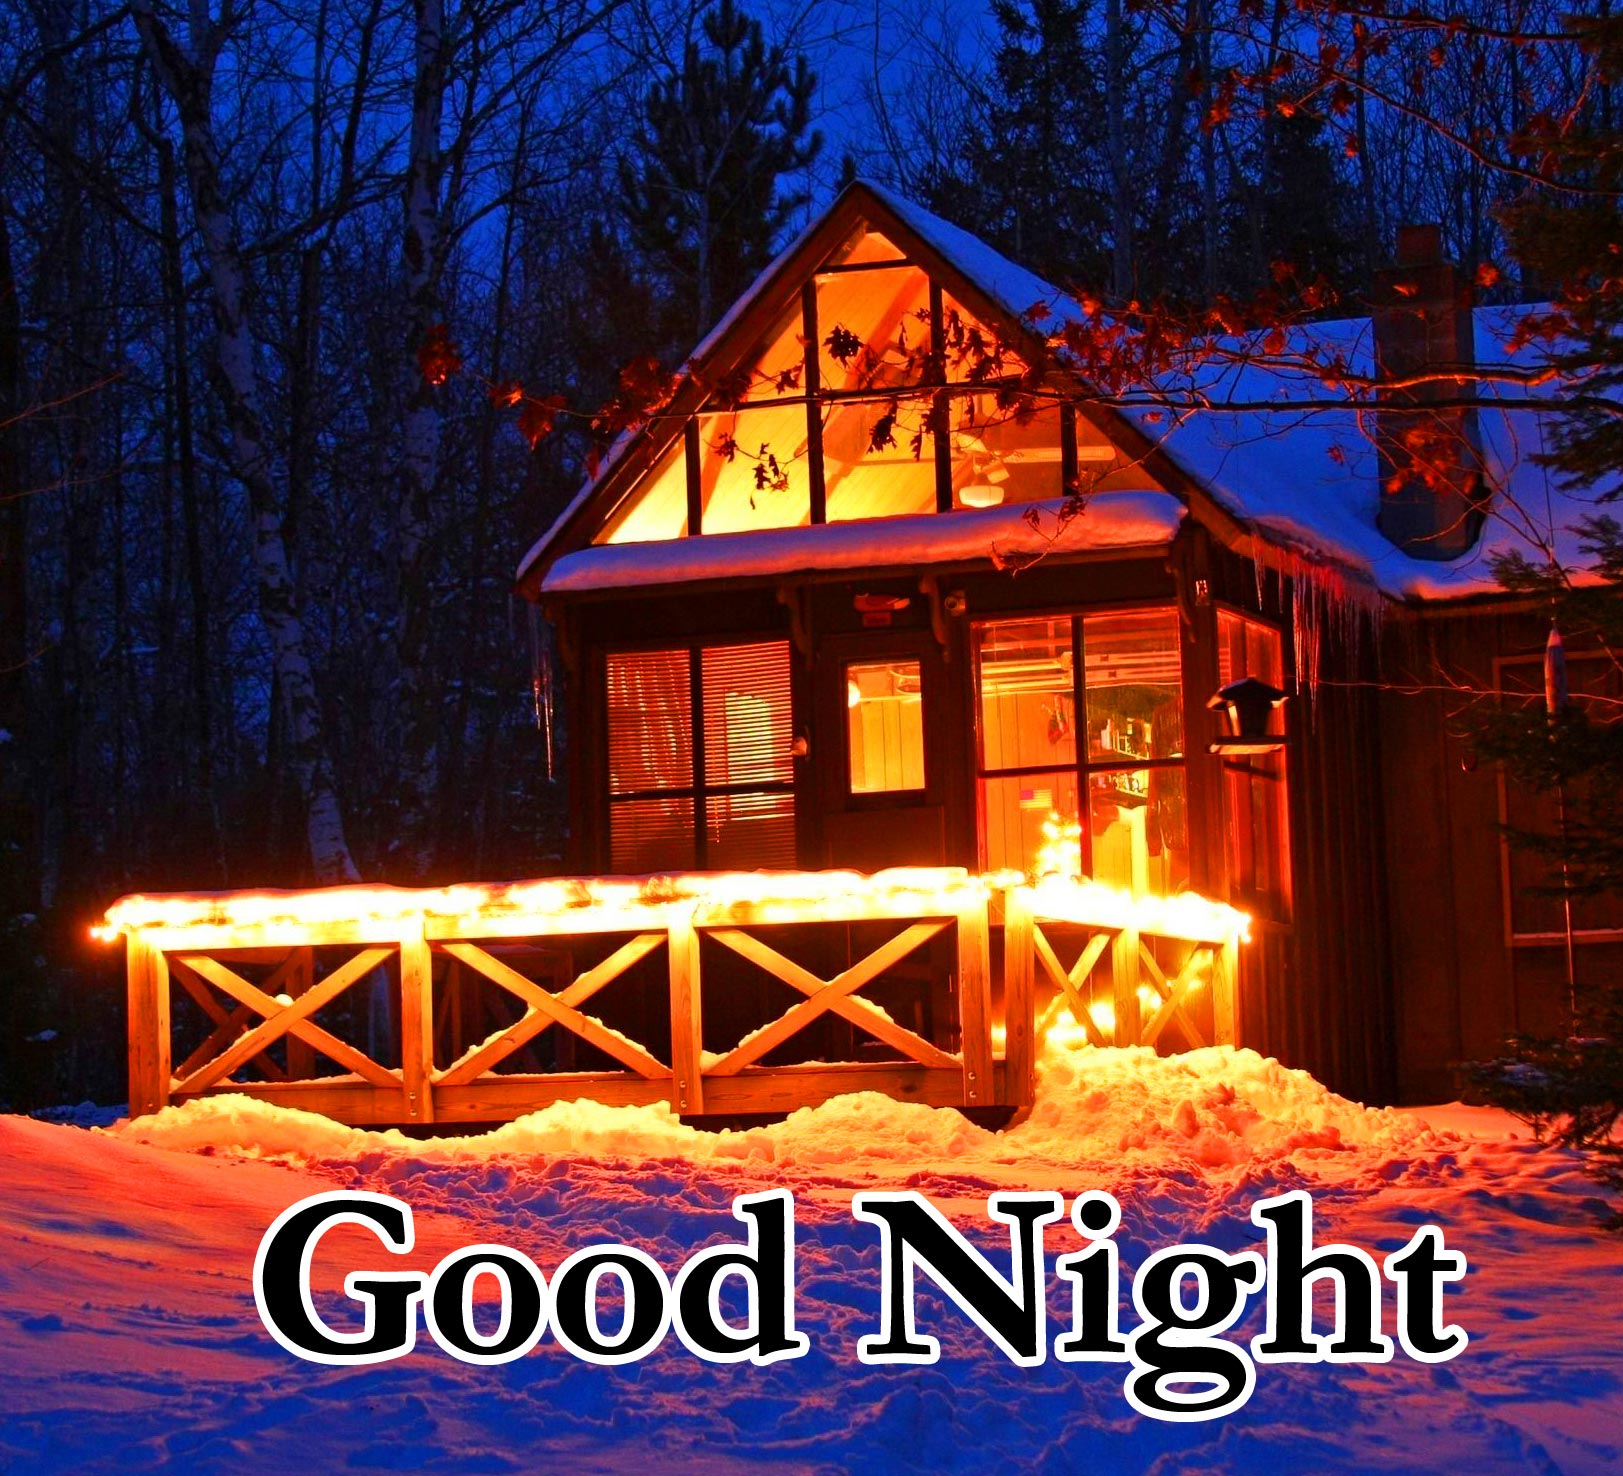 Good Night Message with Winter House Pic